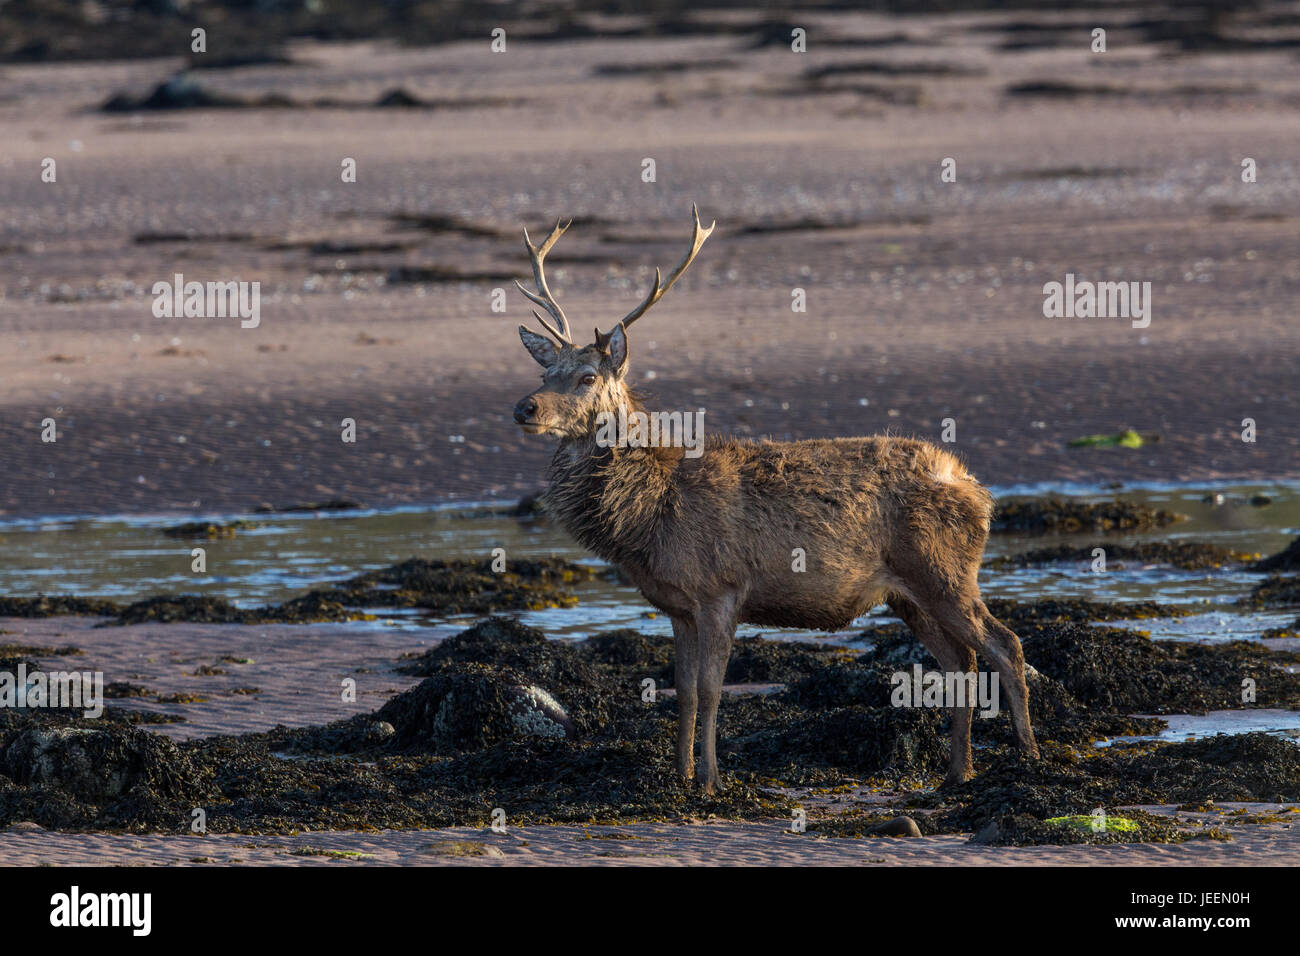 Red Deer stag on beach at Applecross, Scotland. - Stock Image